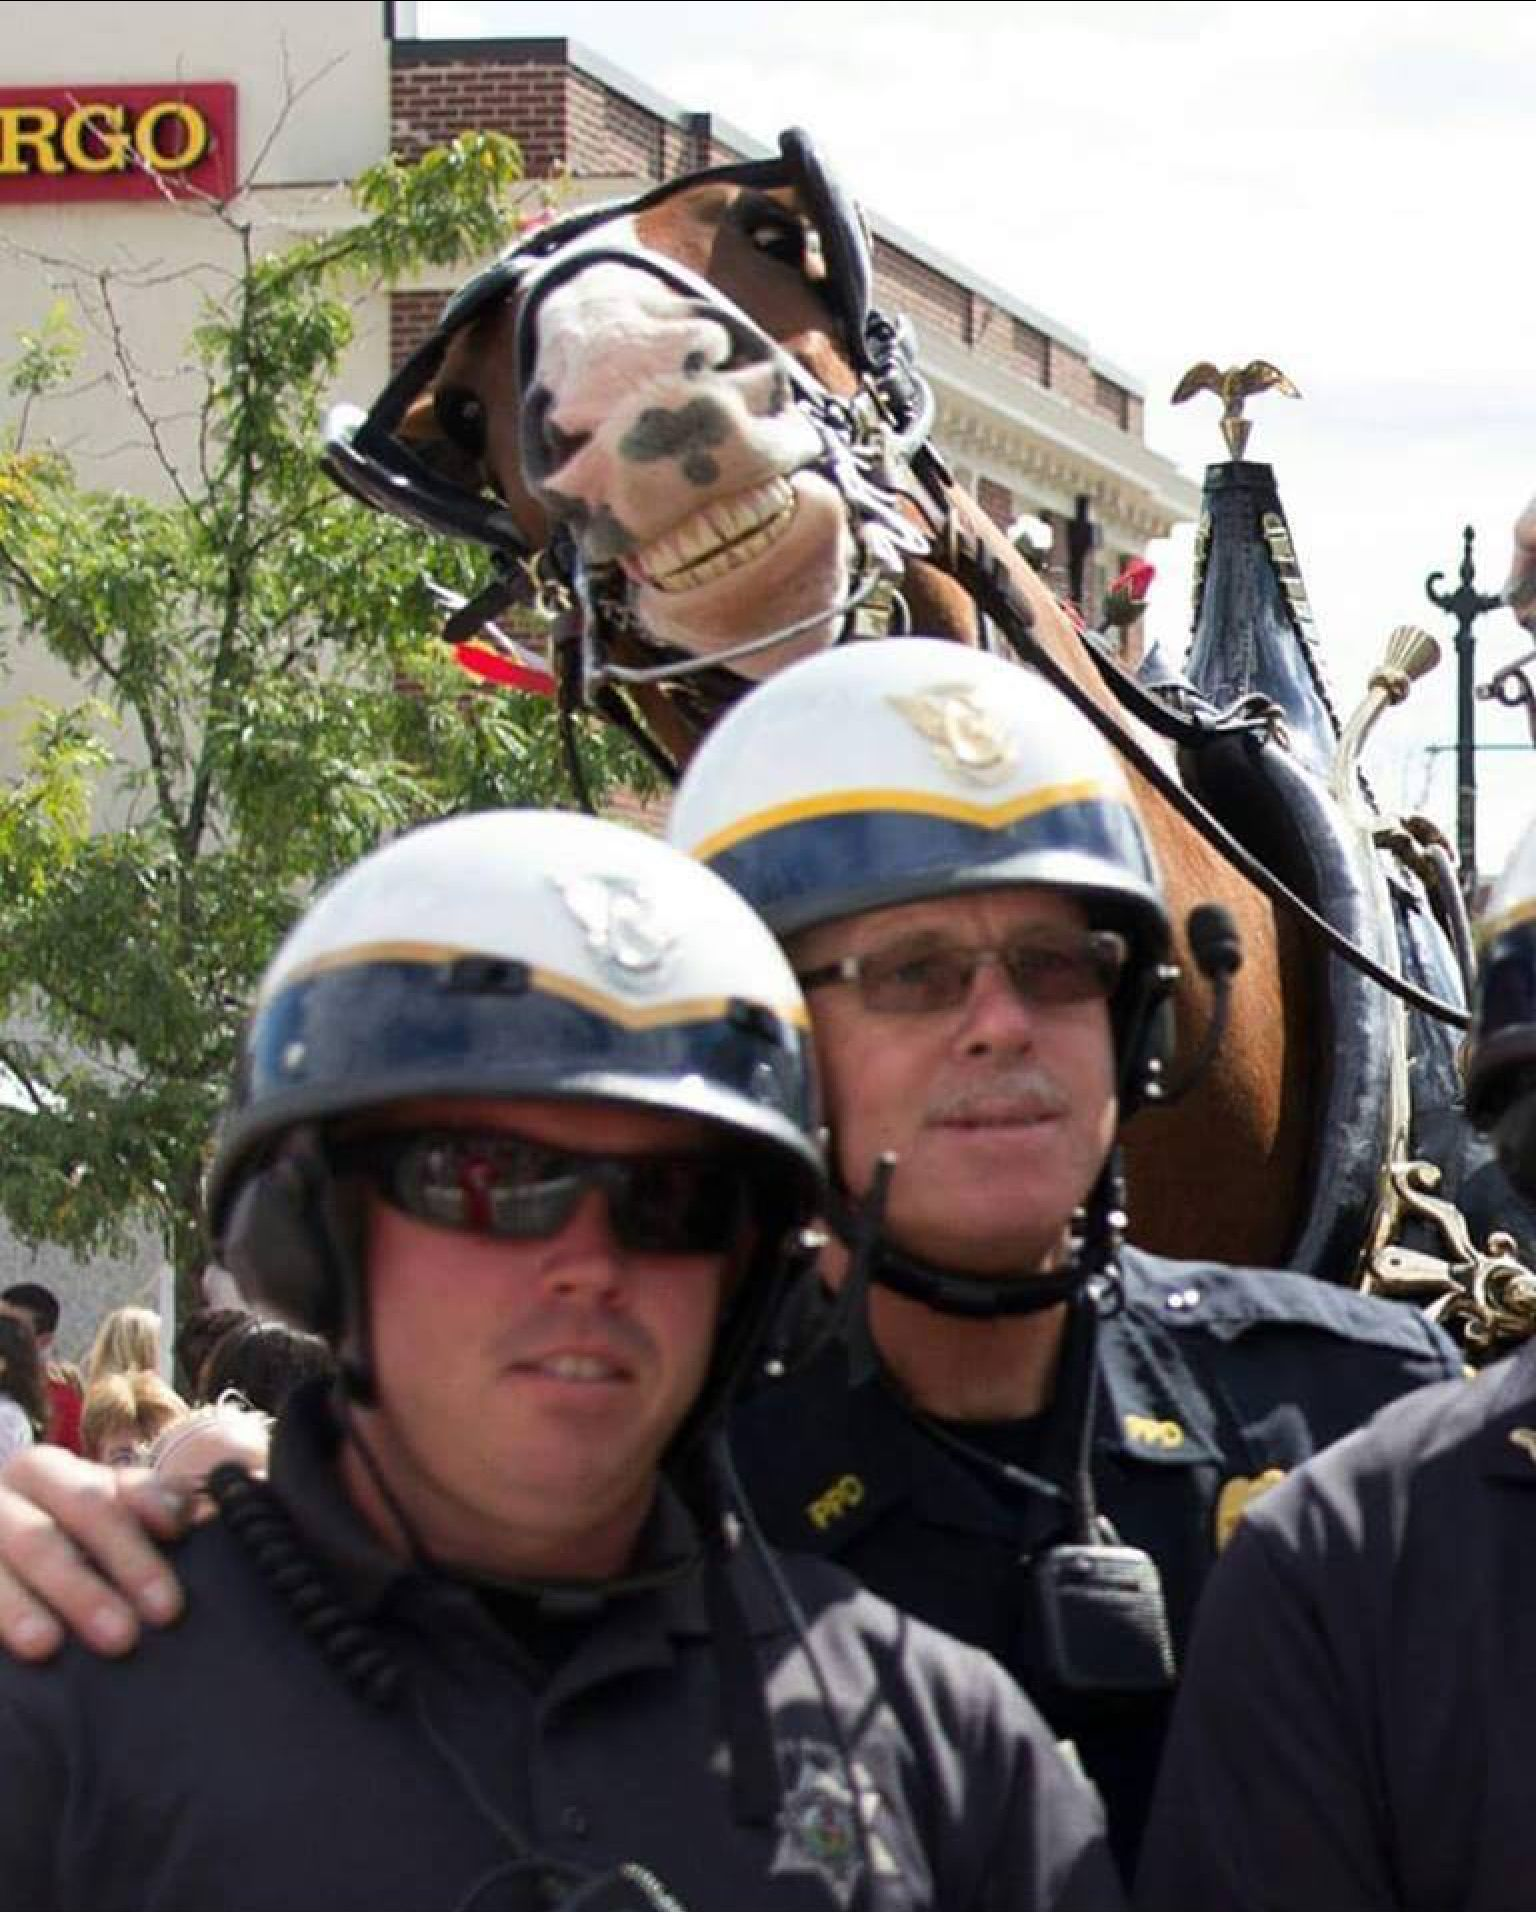 One of the best horse photobombs ever